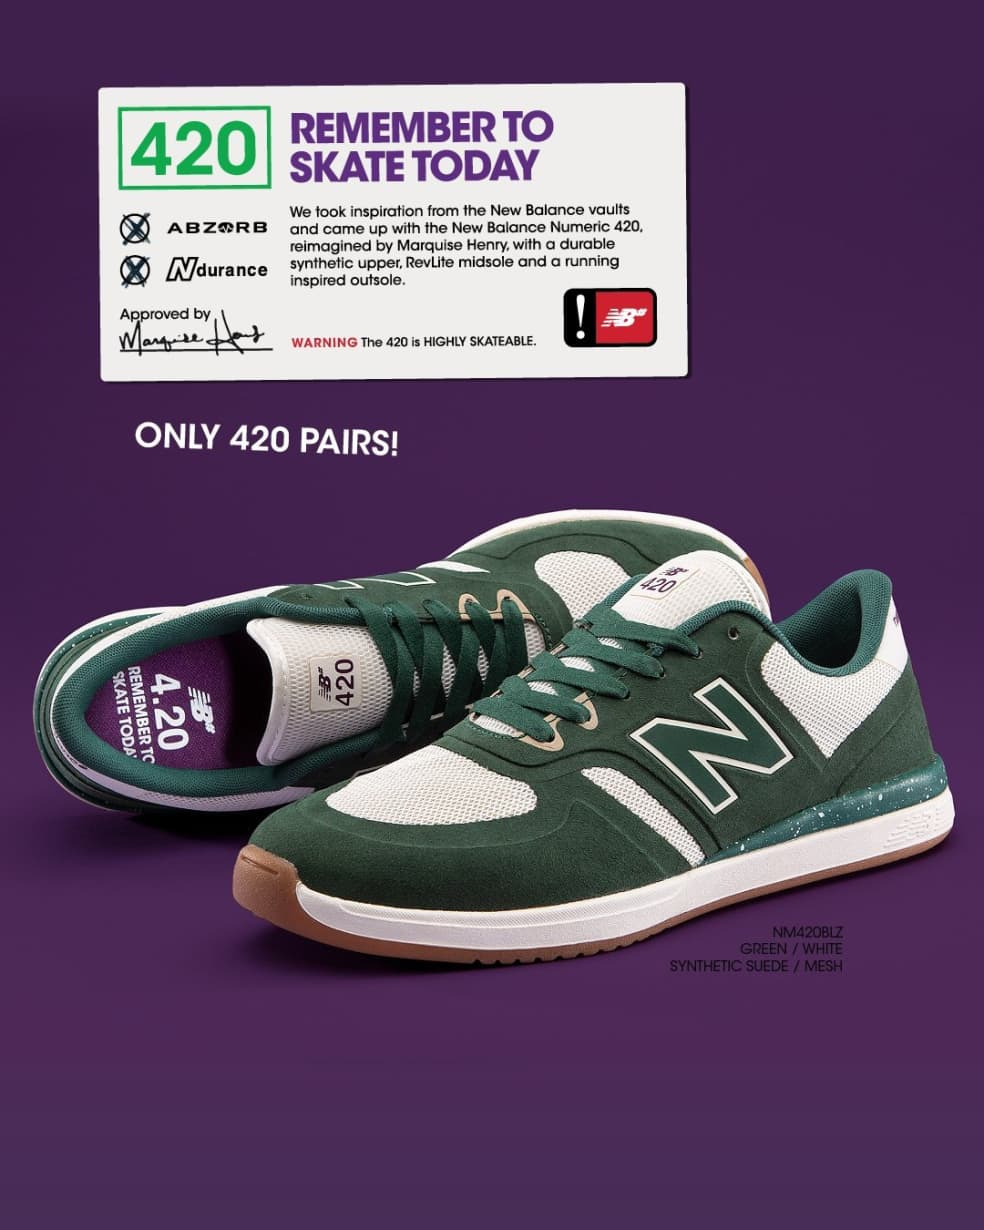 New Balance Numeric 420 Skate Shoe - Green / White - Limited Edition   Shoes by New Balance 3